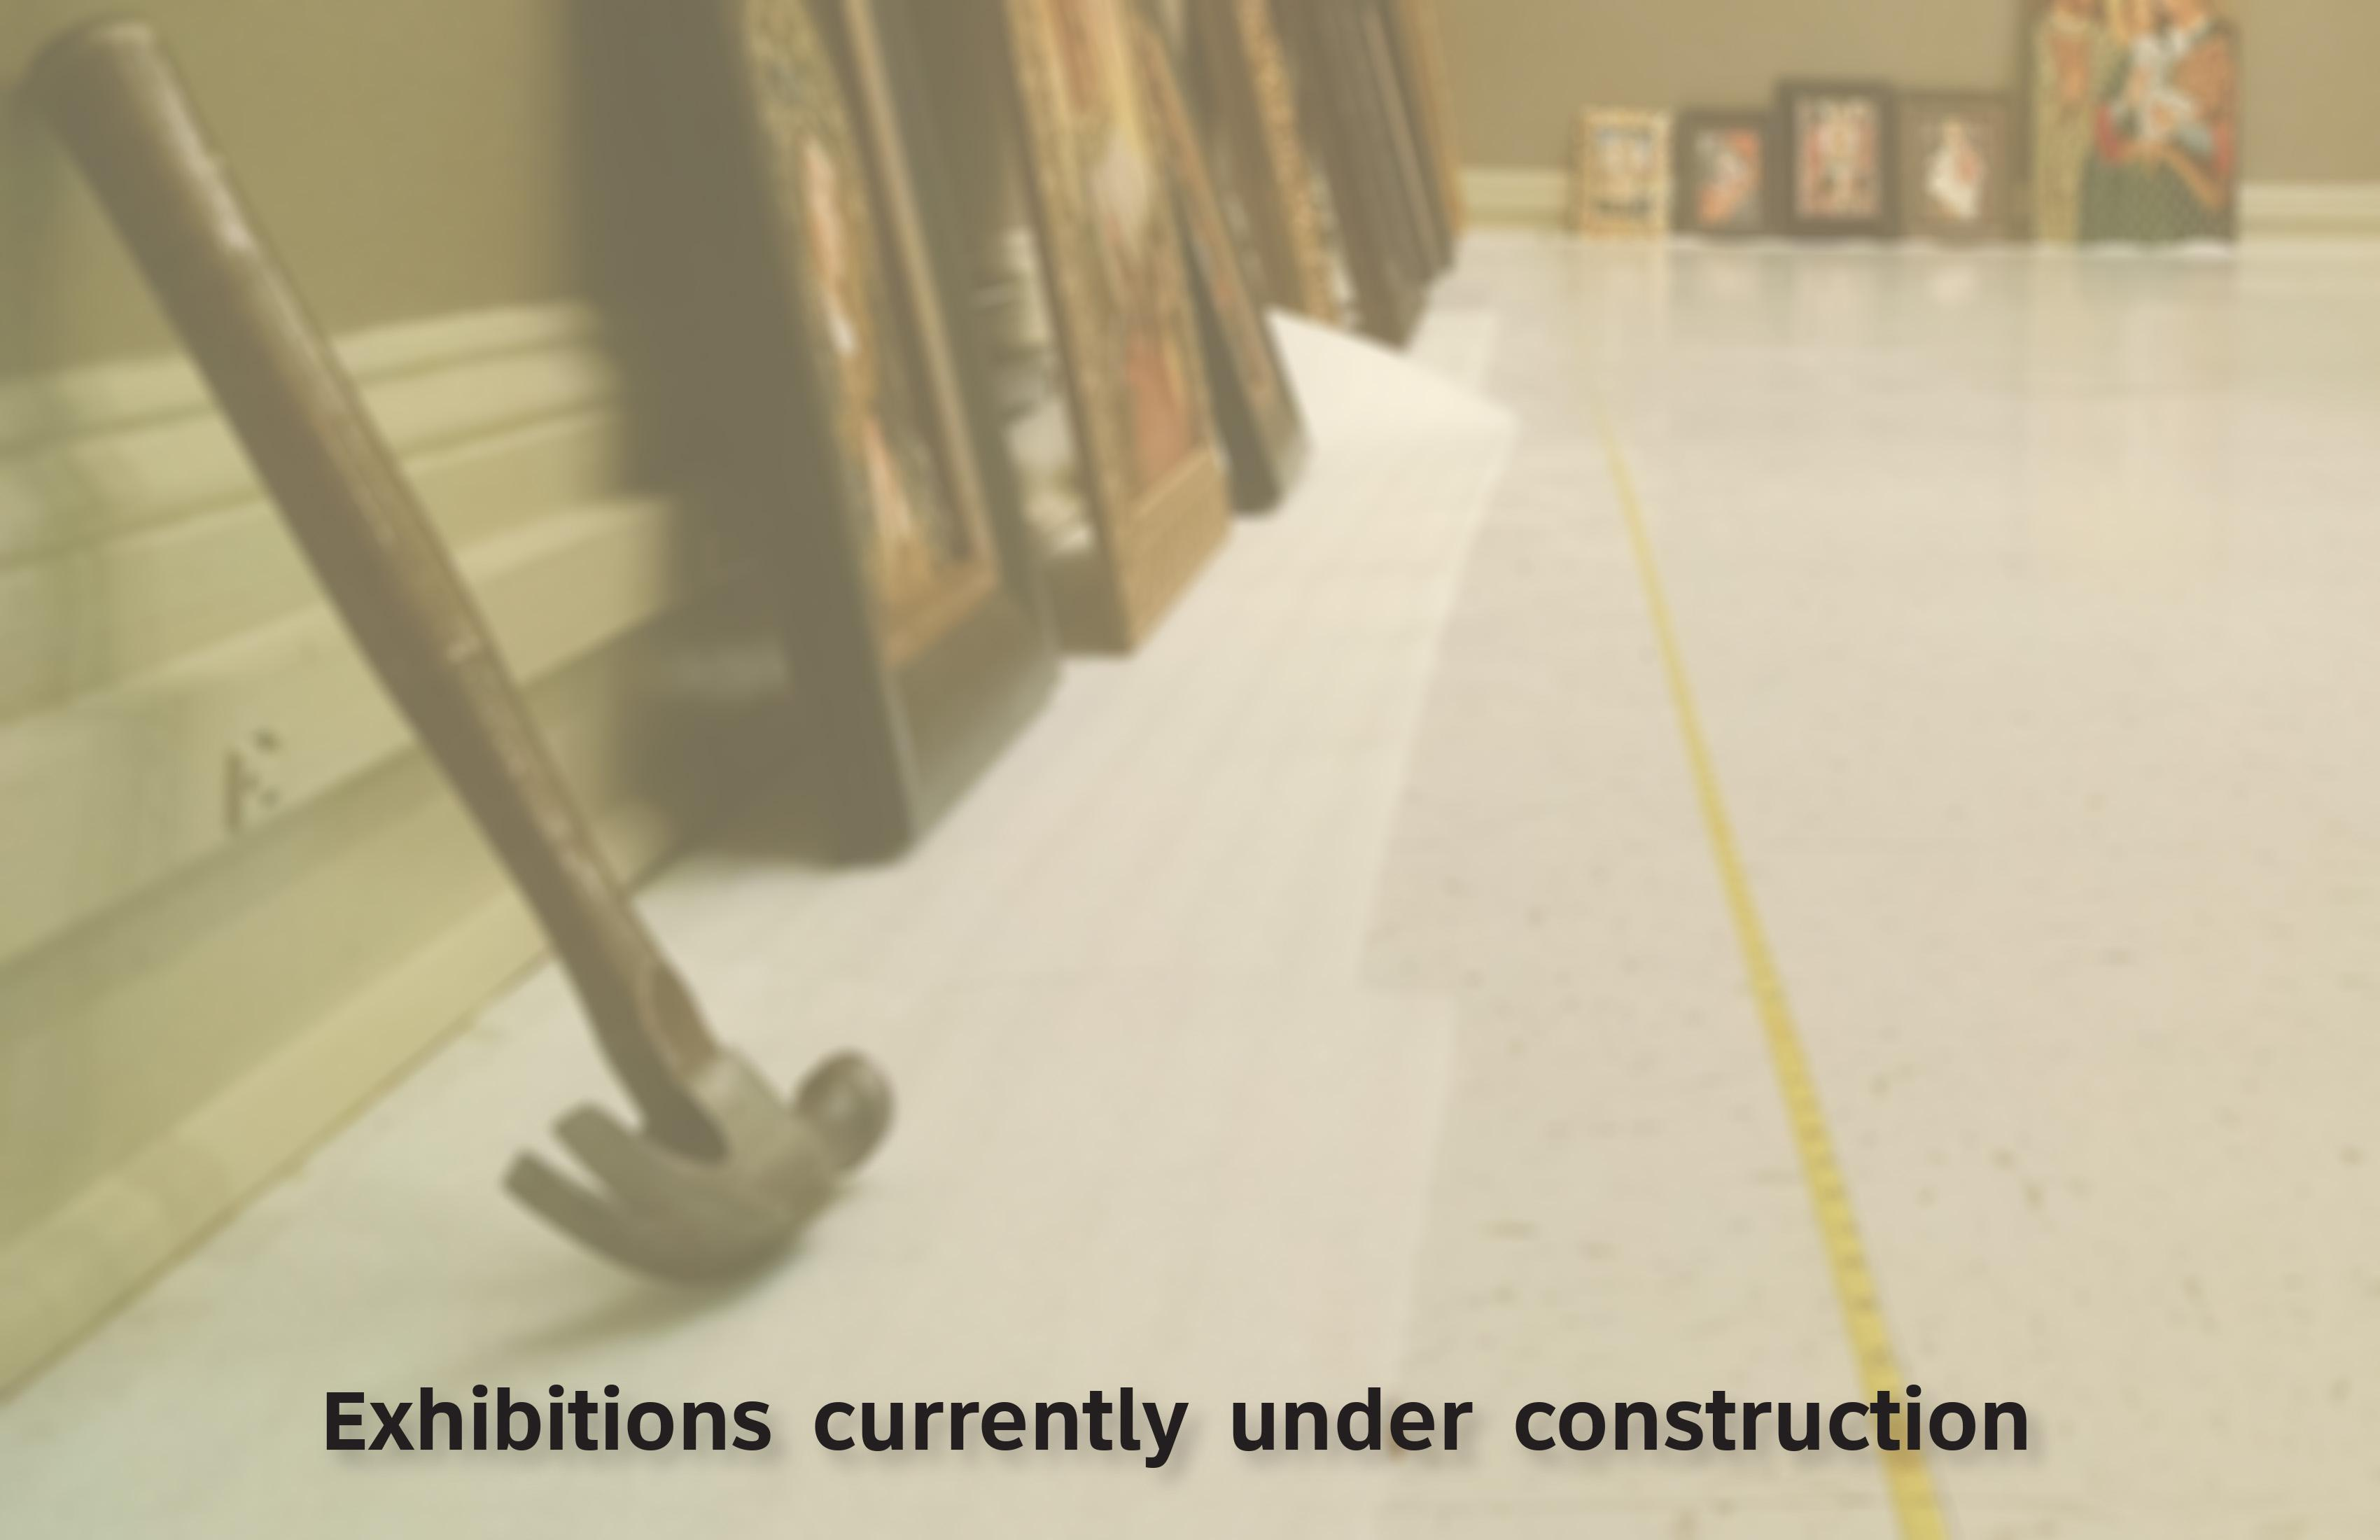 """Image of an installation with the text: """"Exhibitions currently under construction""""."""